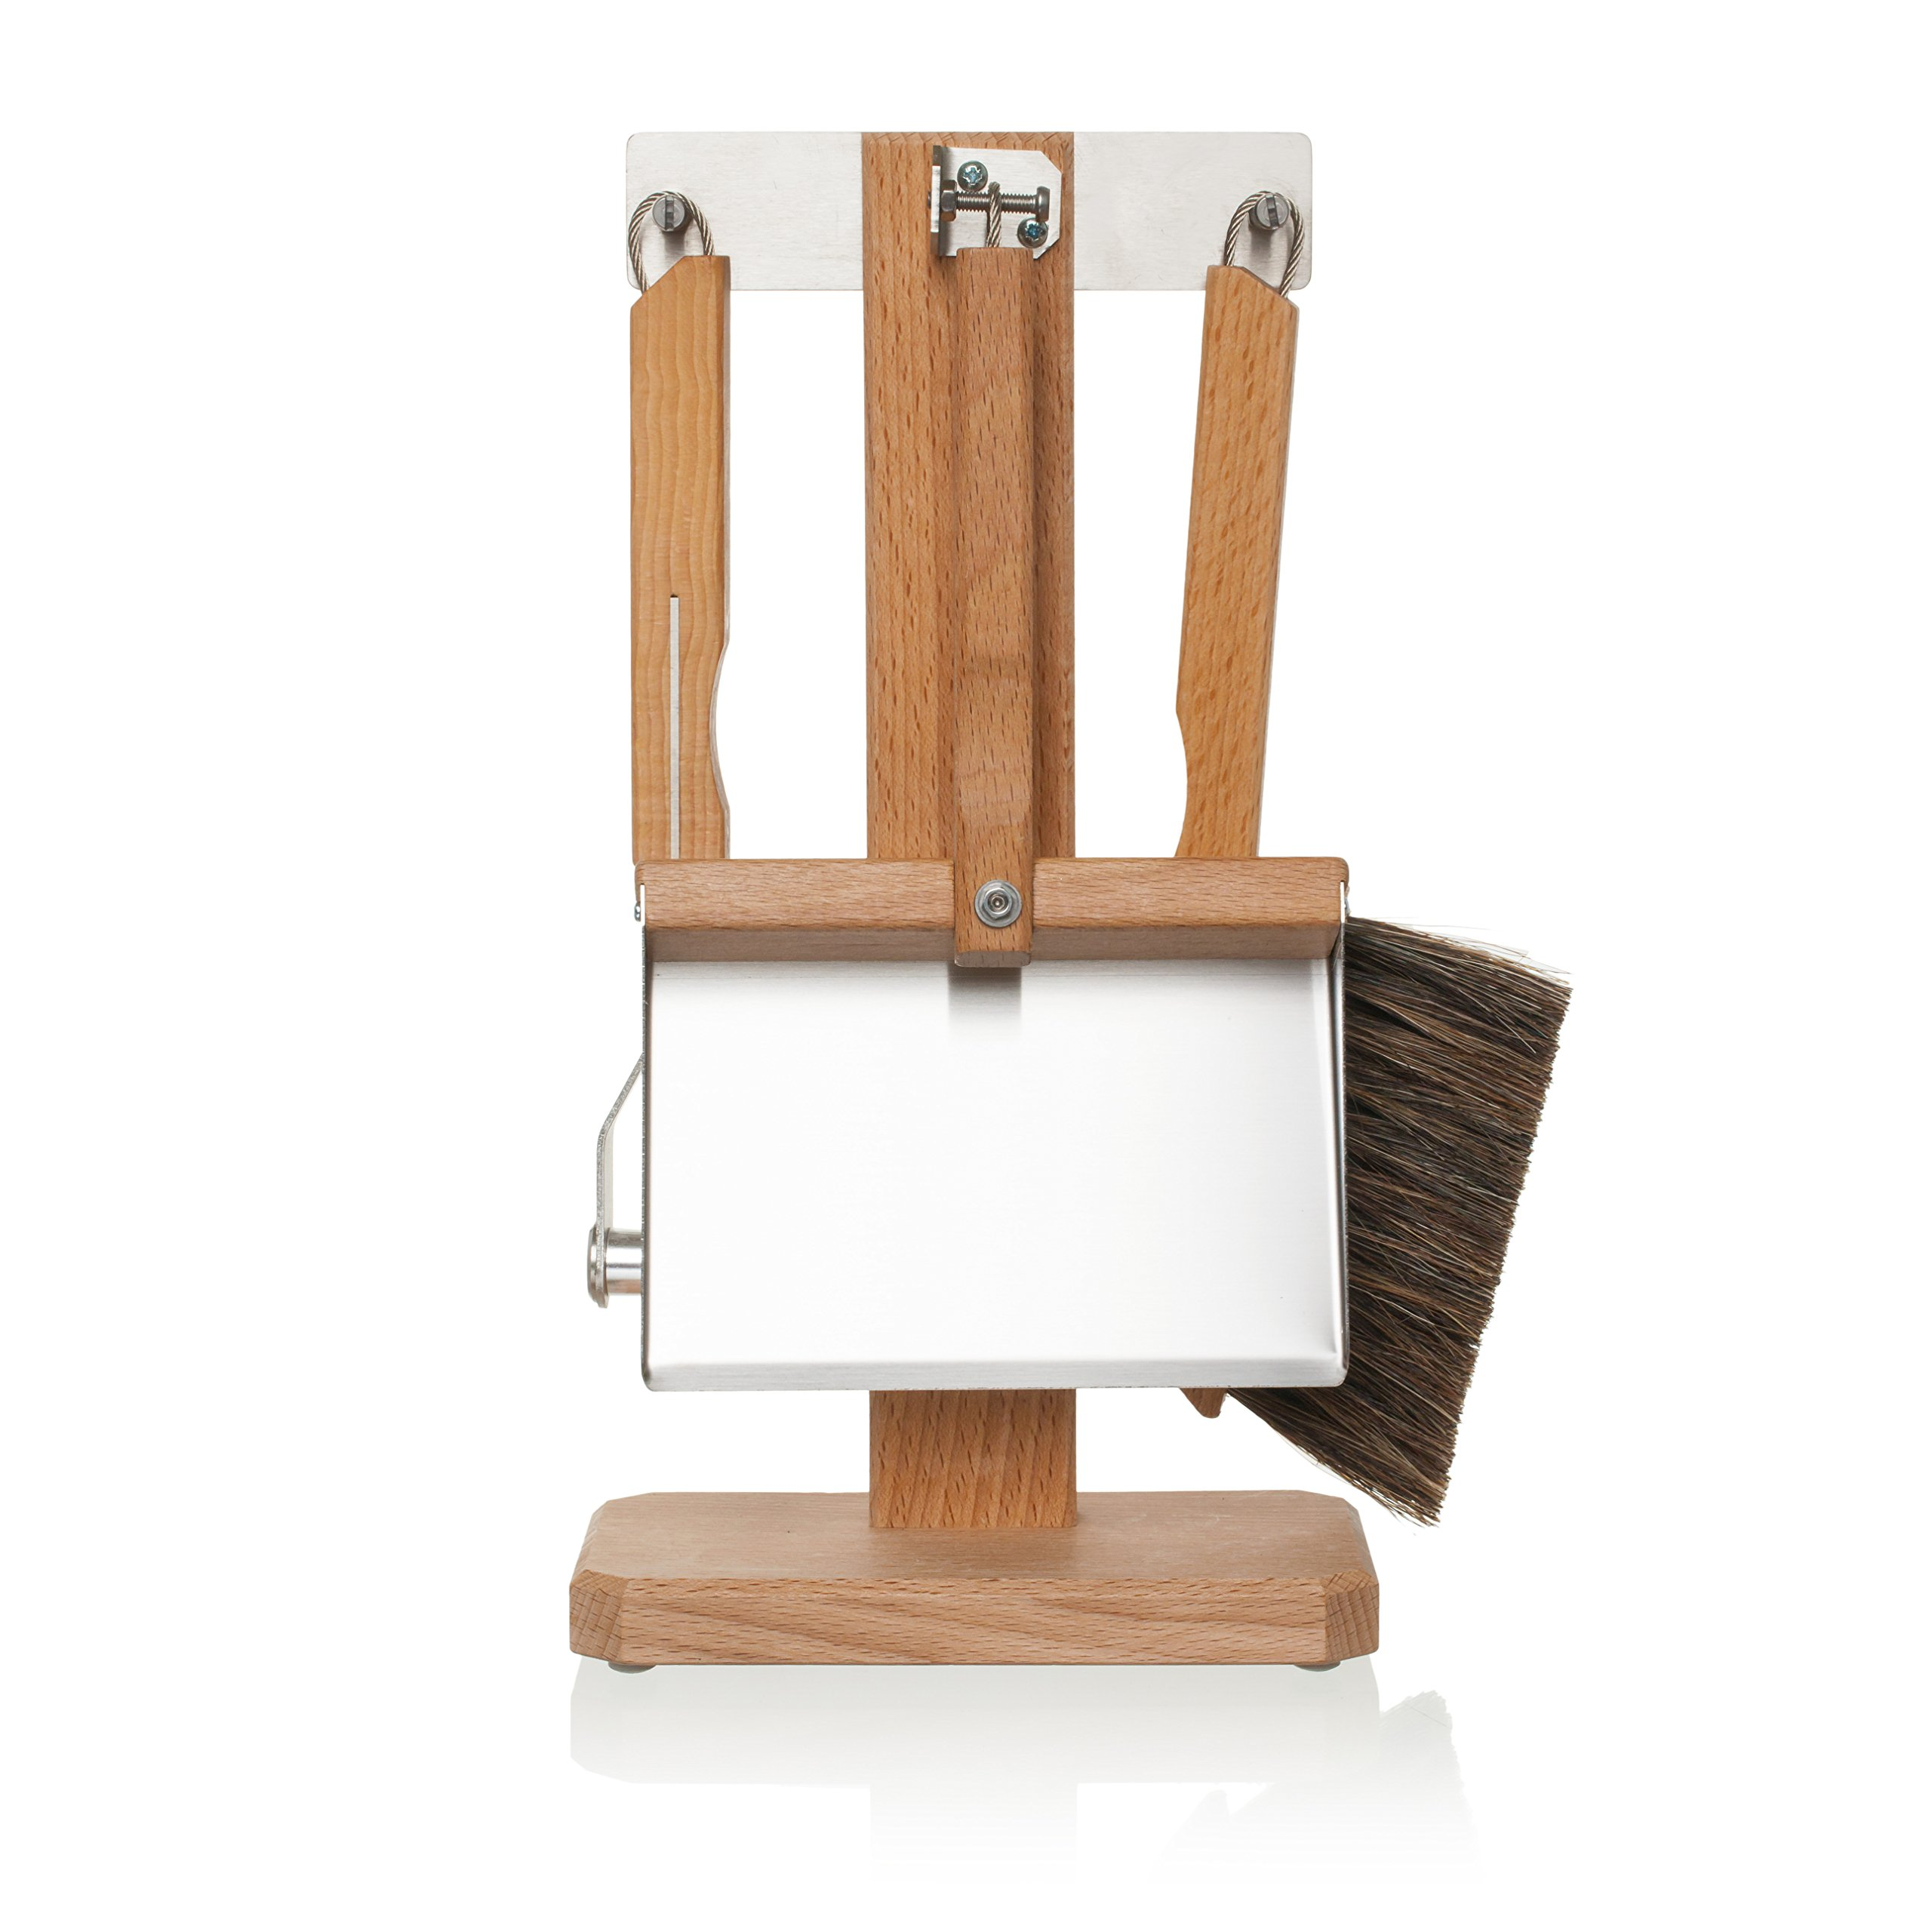 Bürstenhaus Redecker 4-Piece Oiled Beechwood and Stainless Steel Espresso Set with Pig Bristle and Horsehair Coffee Brushes